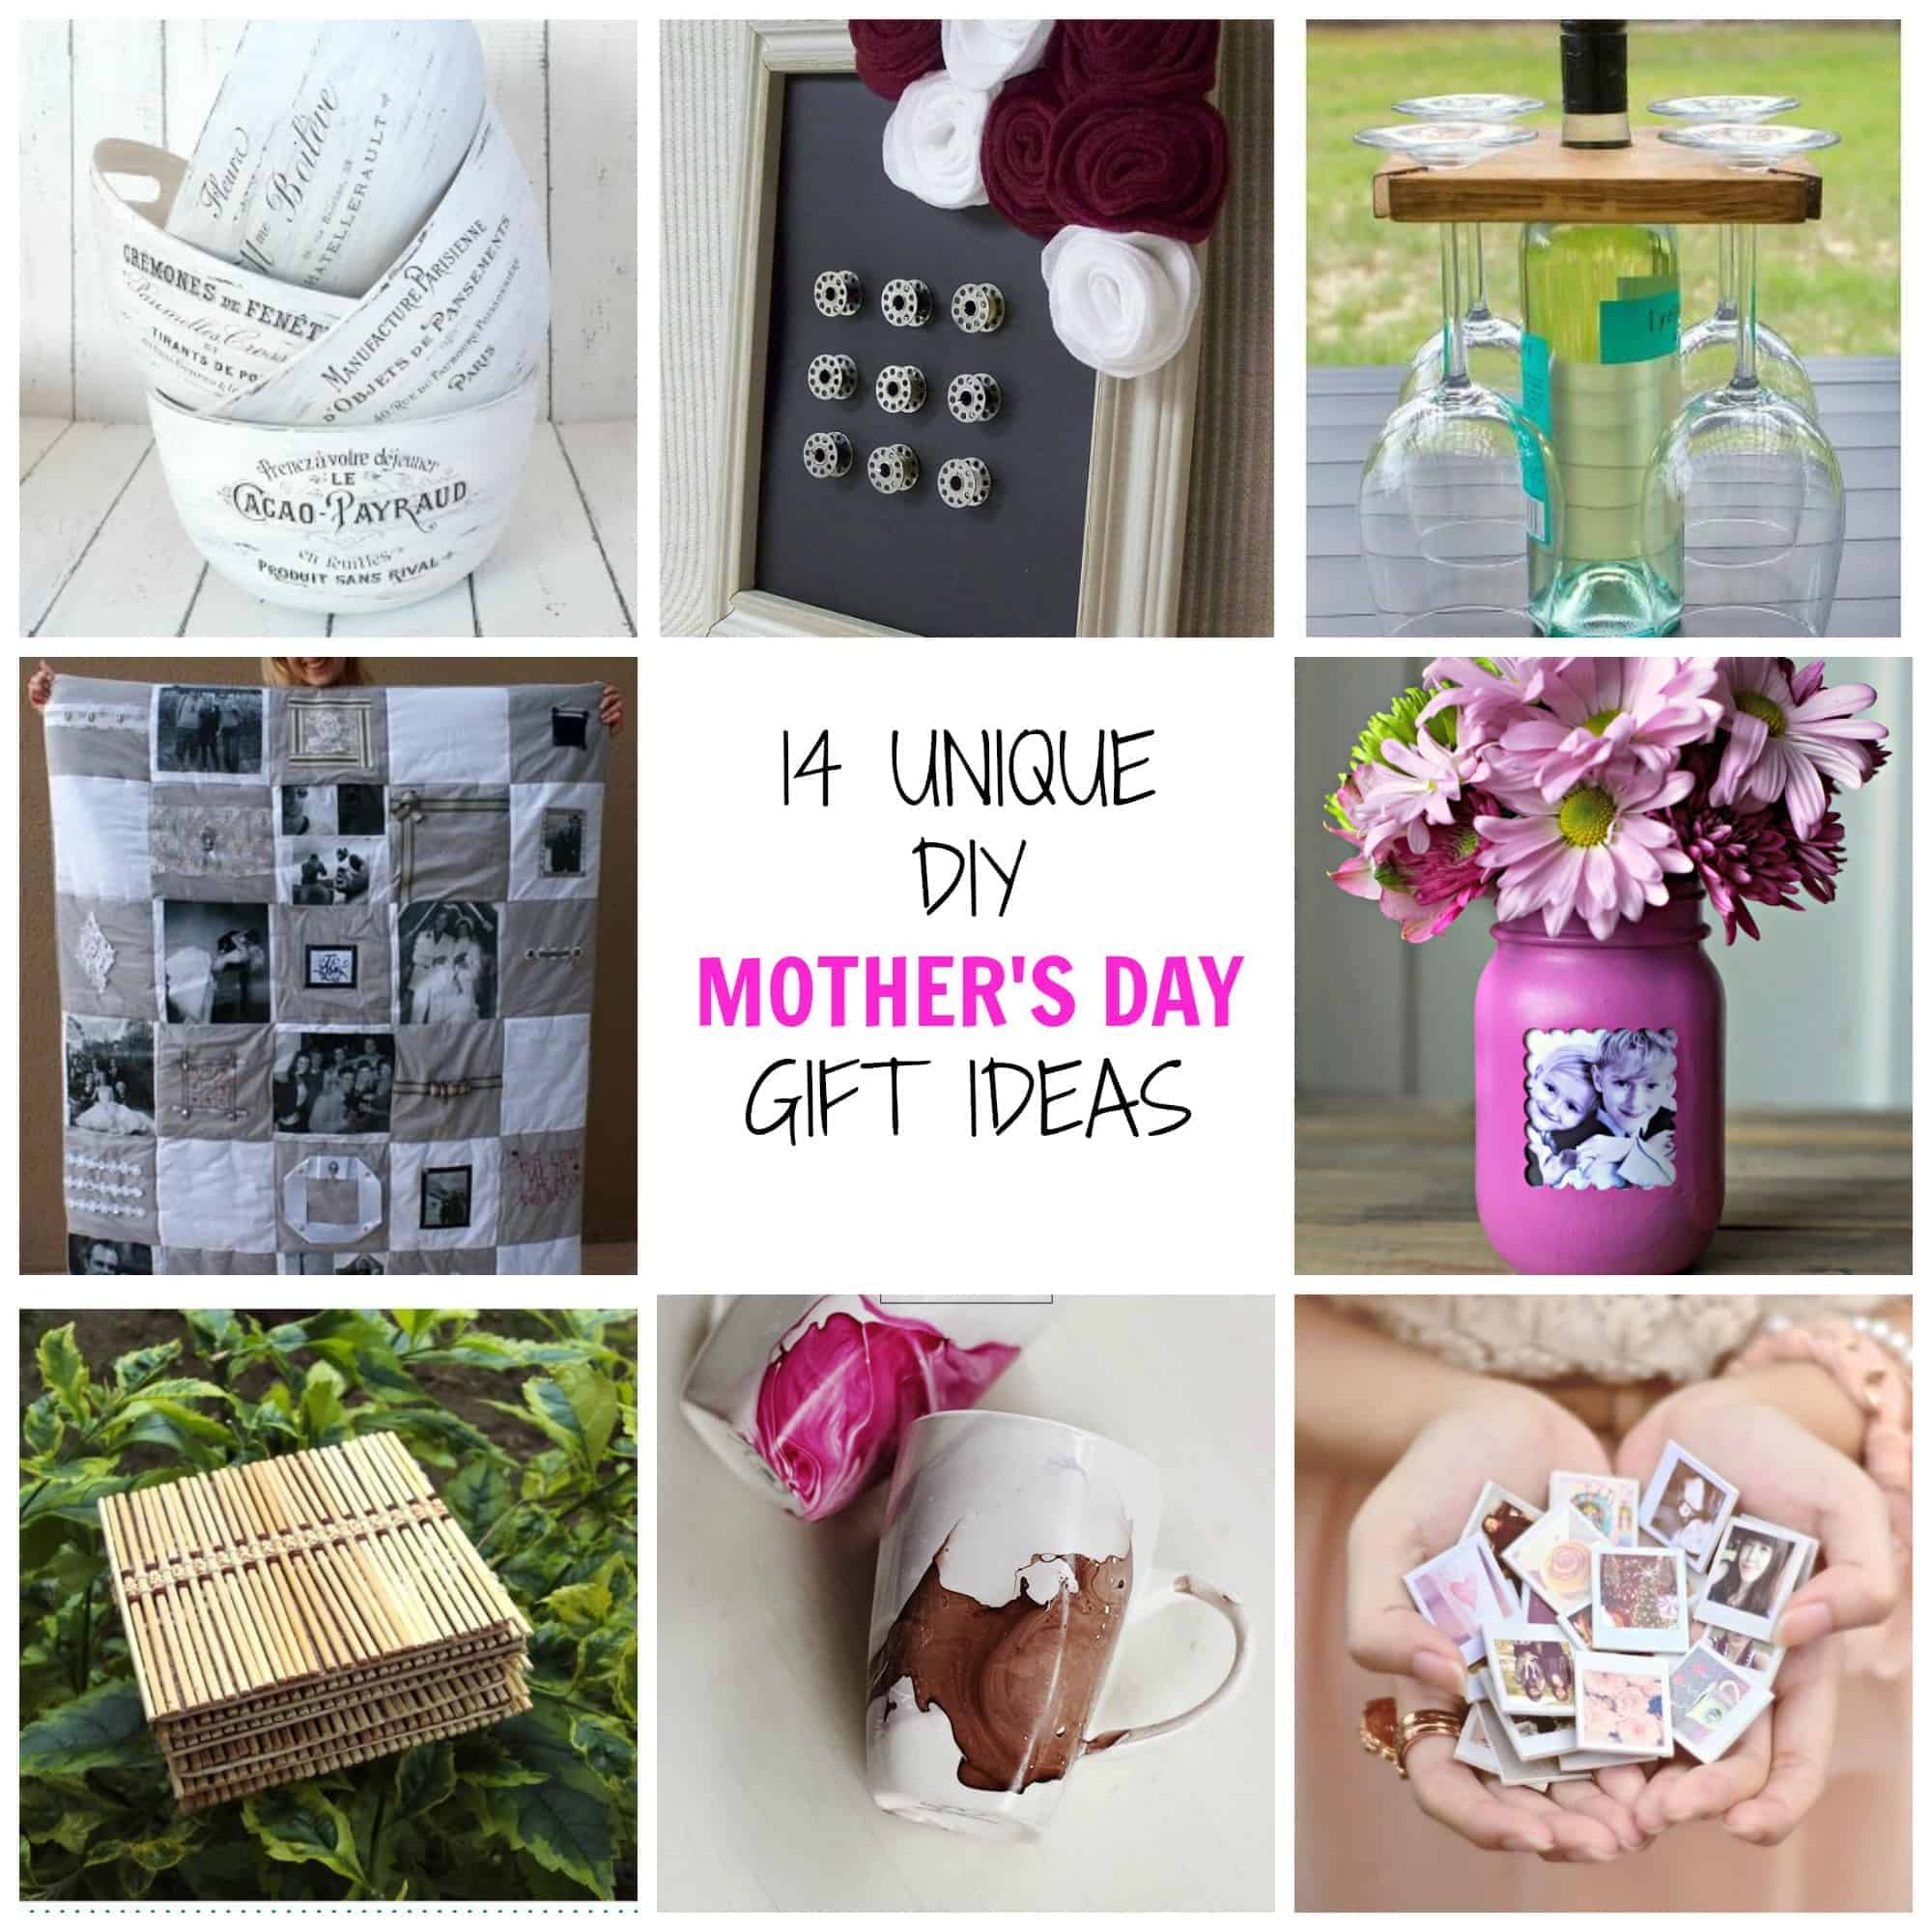 Diy Mothers Day Gifts From Baby 14 Unique Diy Mother 39s Day Gifts Simplify Create Inspire